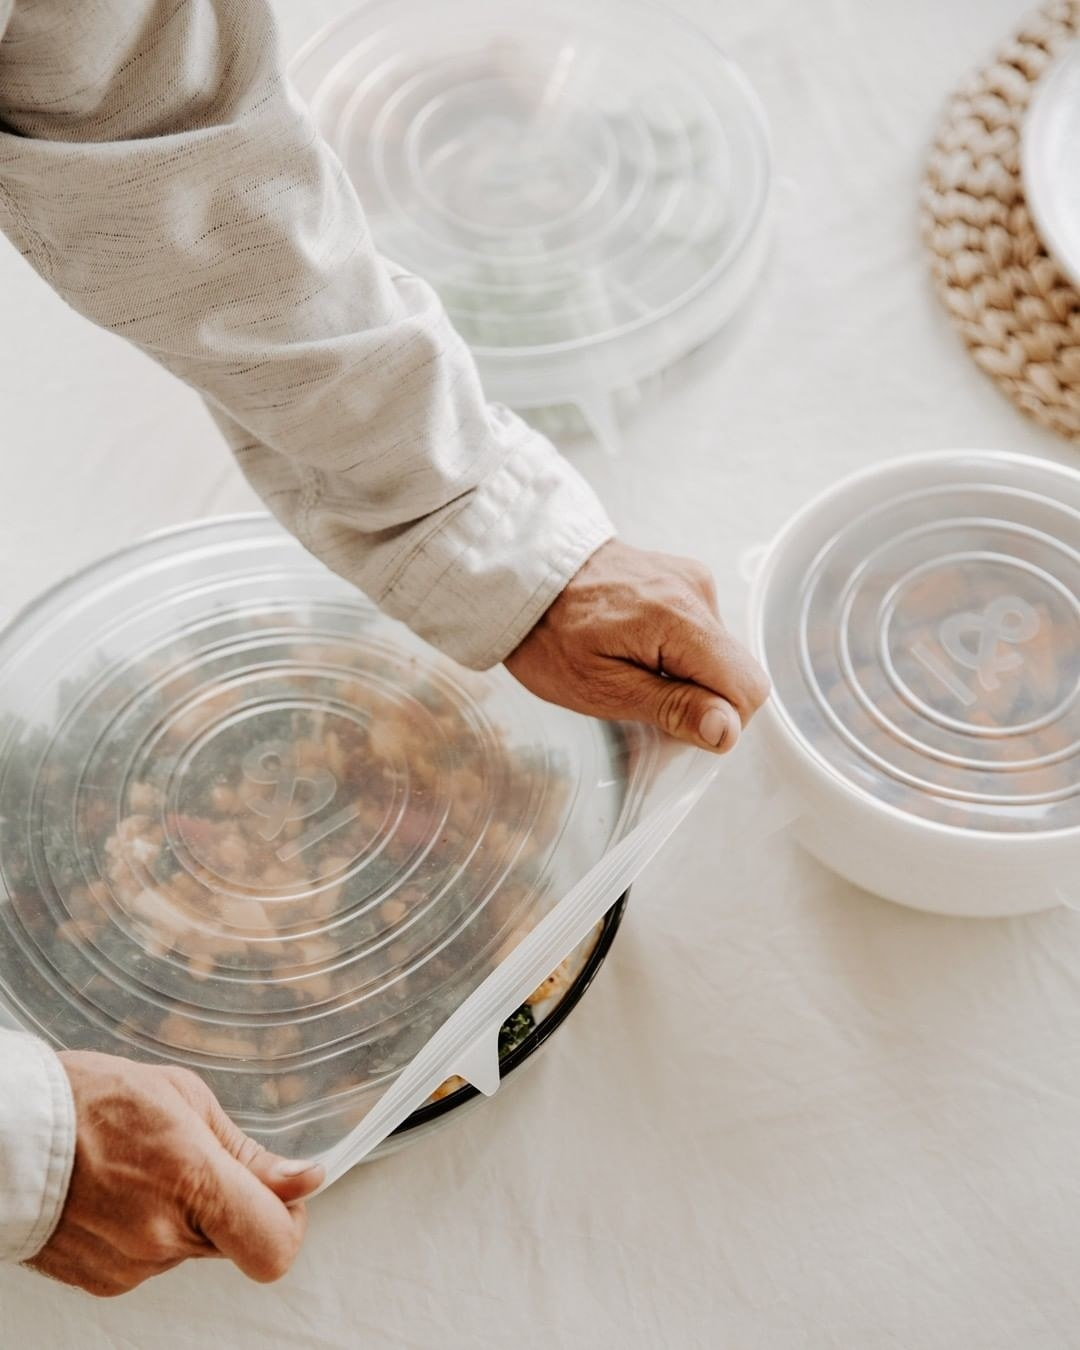 Someone stretching one of the silicone lids over a salad bowl